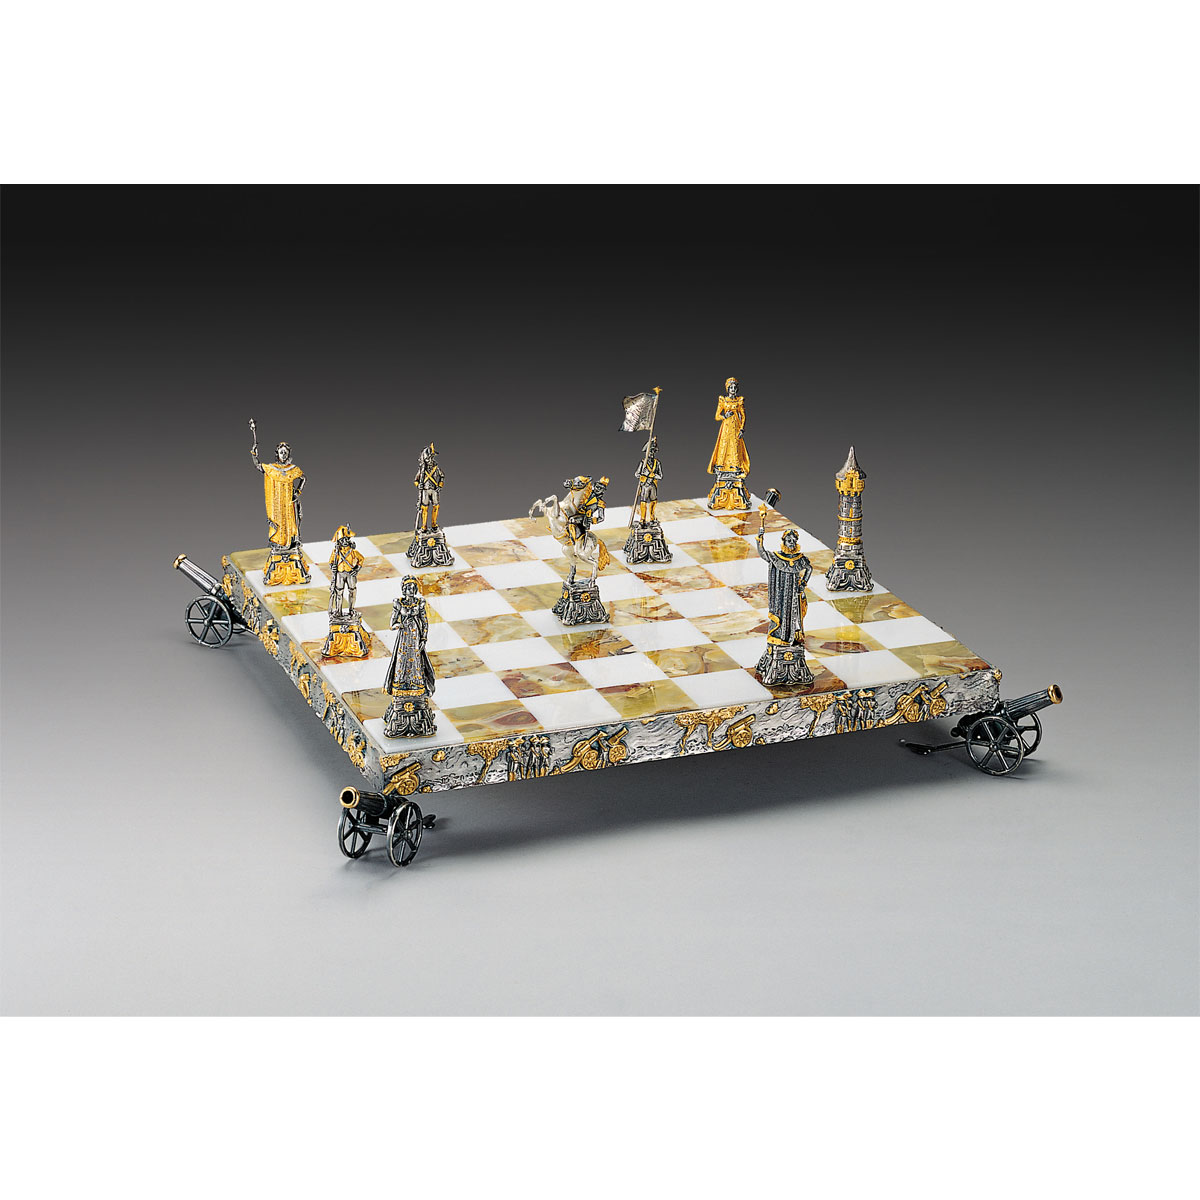 Napoleon Bonaparte Emperor Gold and Silver Themed Chess Set